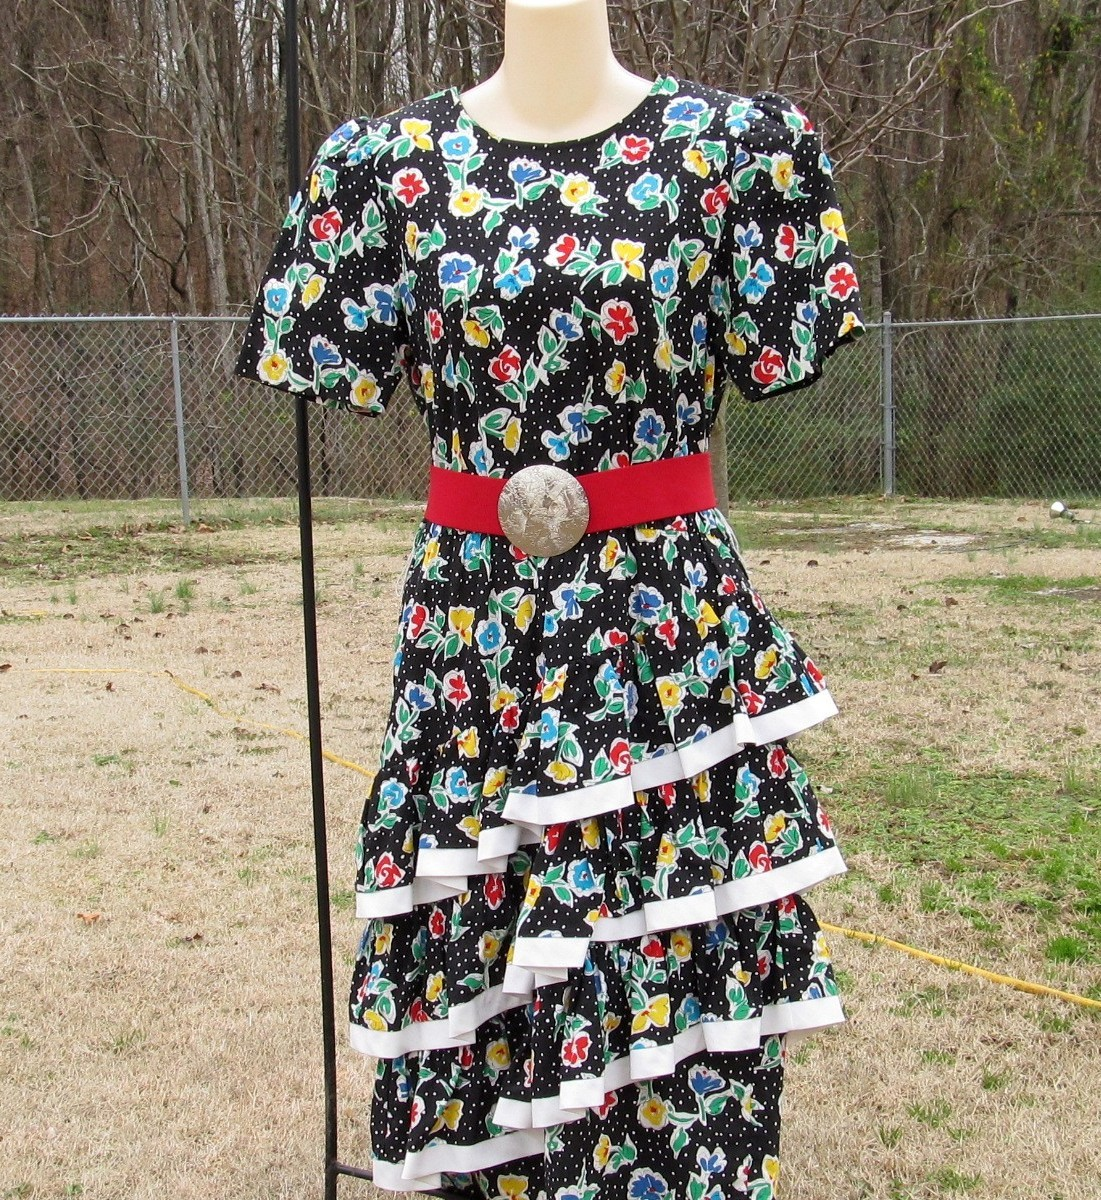 Vintage Straight Black Dress with 3 Cha Cha Layers 1980s Floral Design Size 11-1 image 3